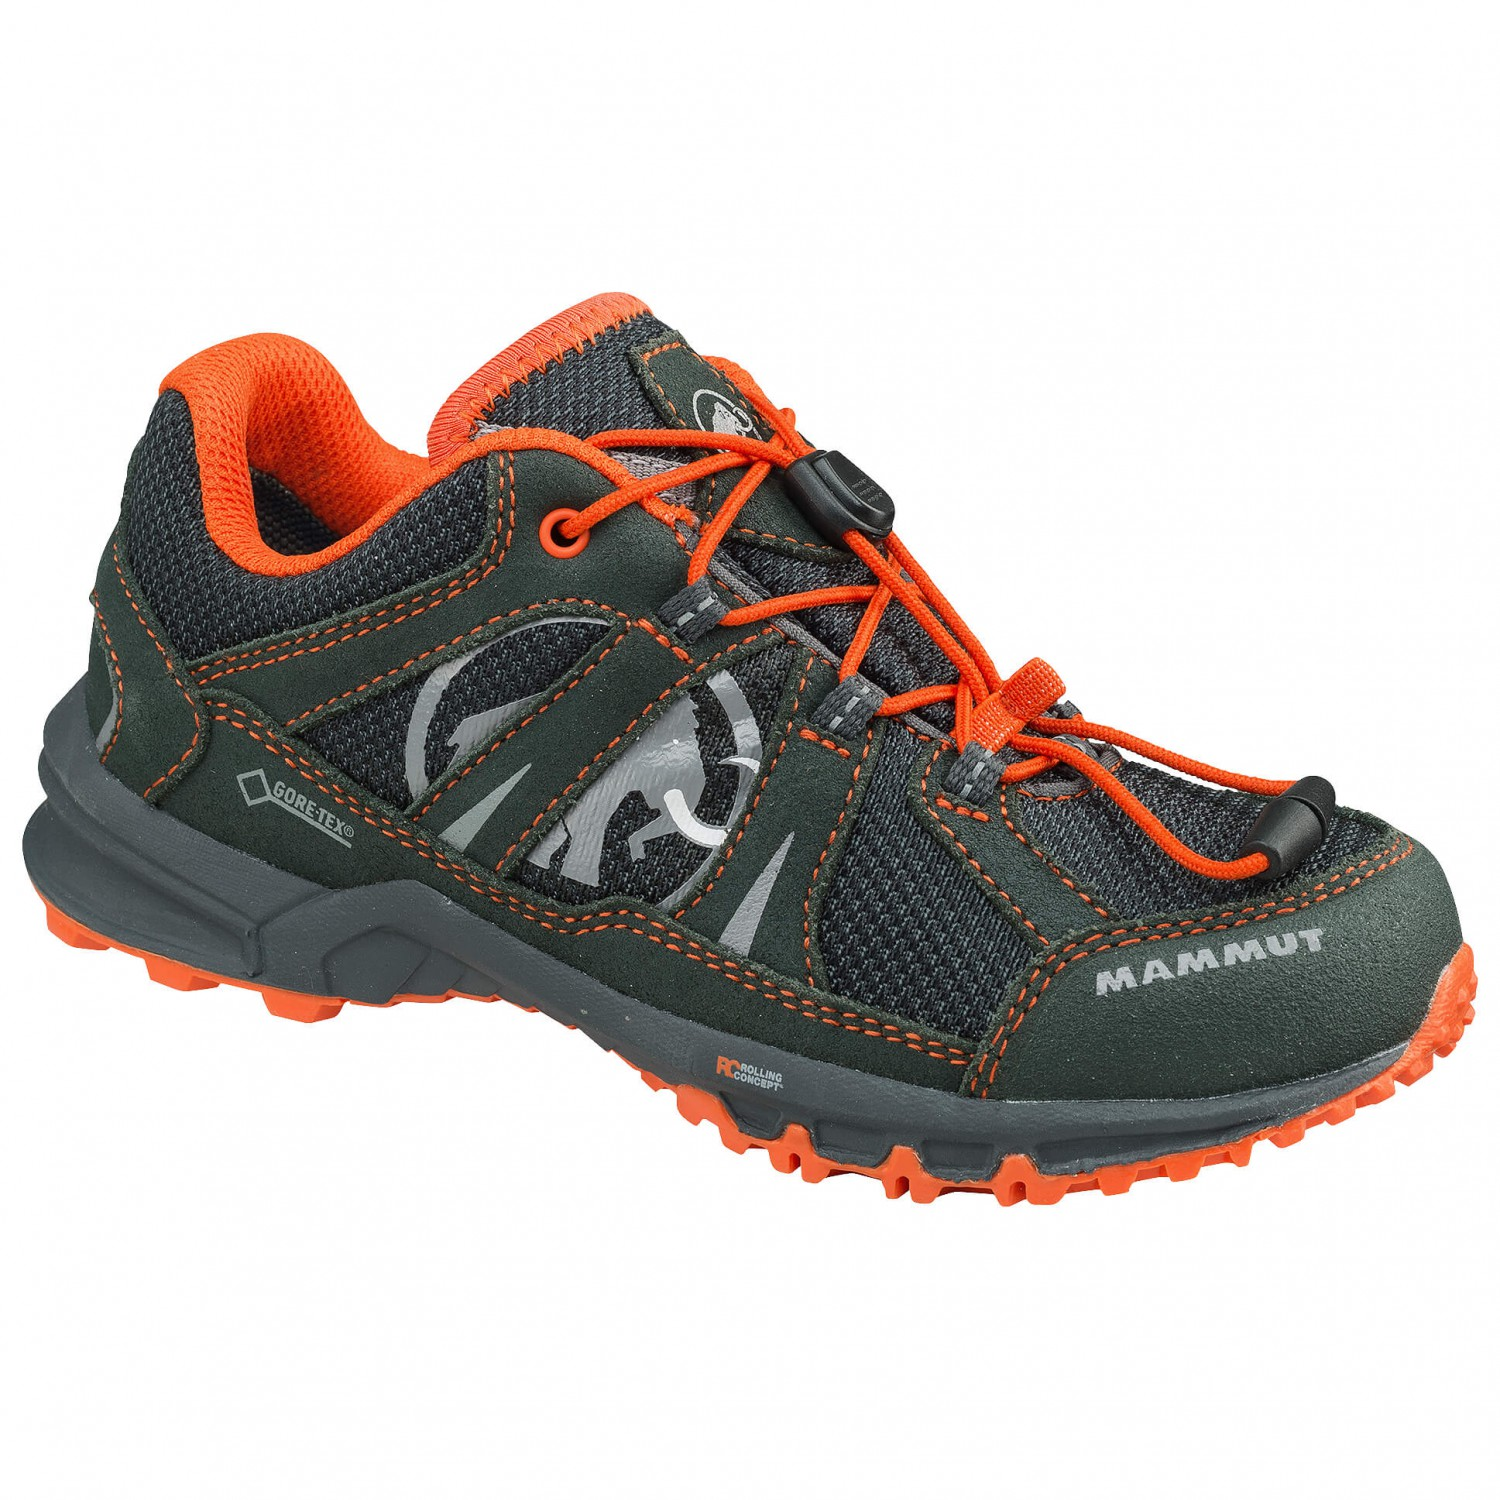 Multisport Shoes Uk Online